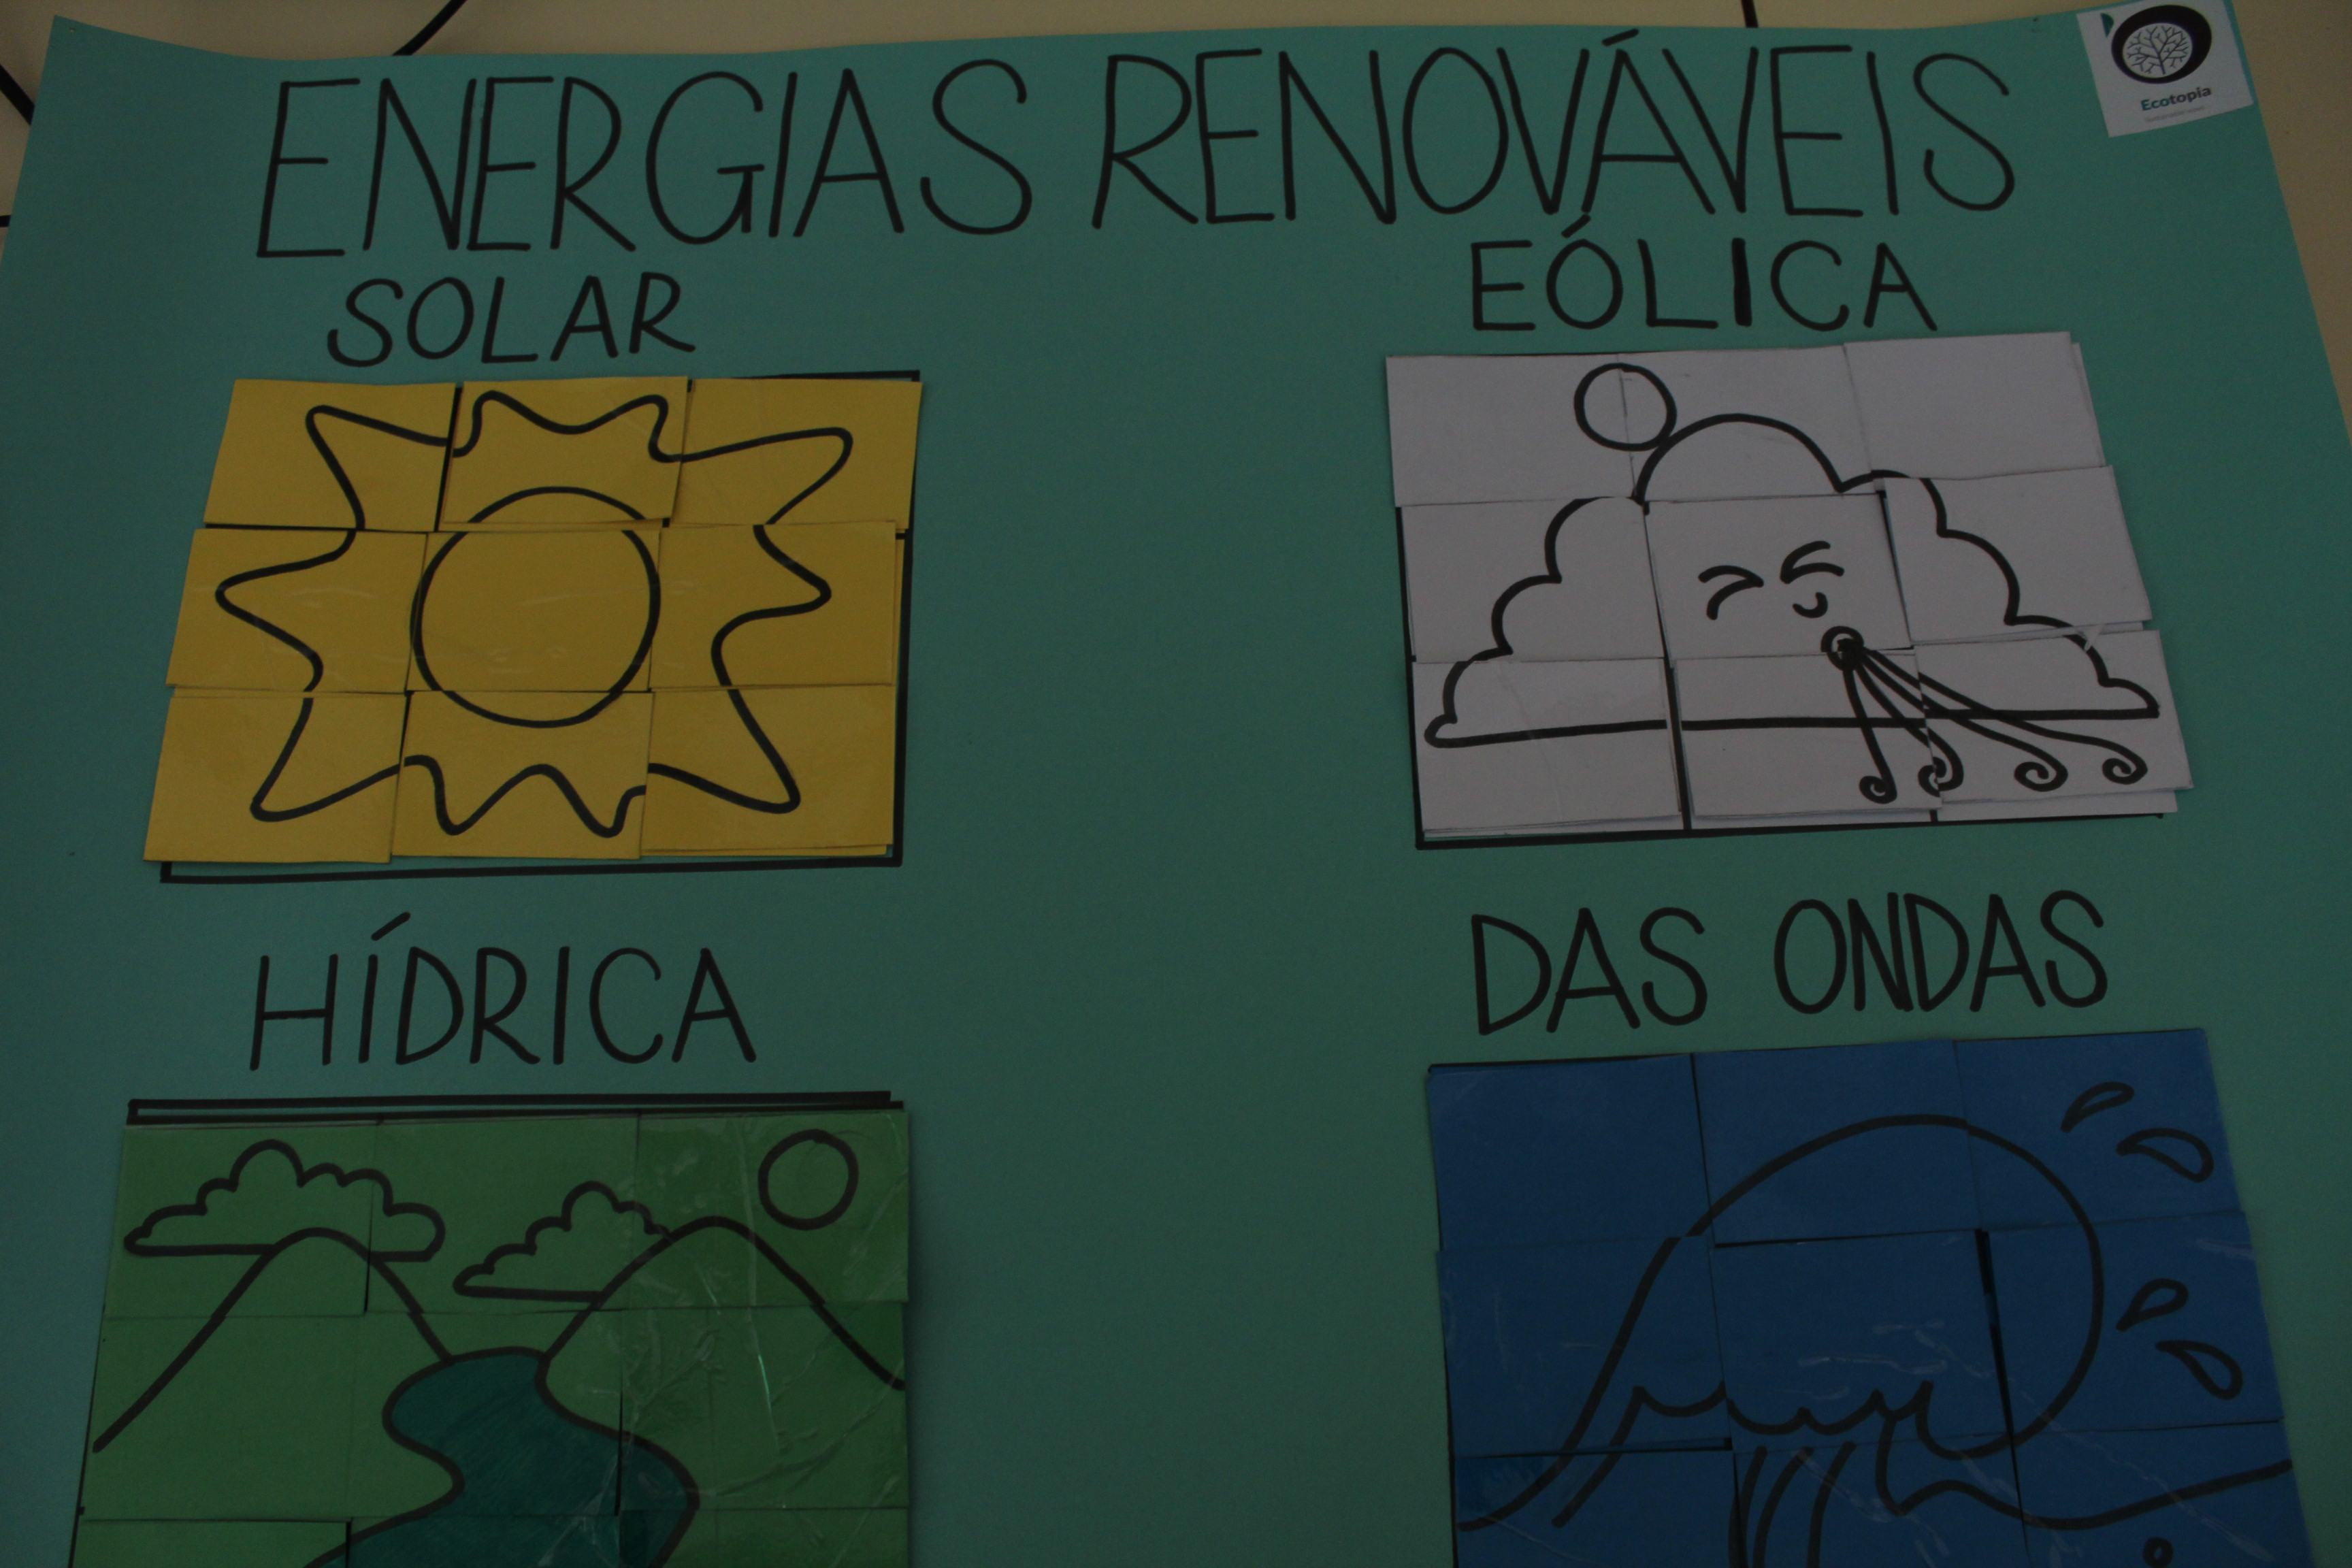 Workshop Energias Renováveis